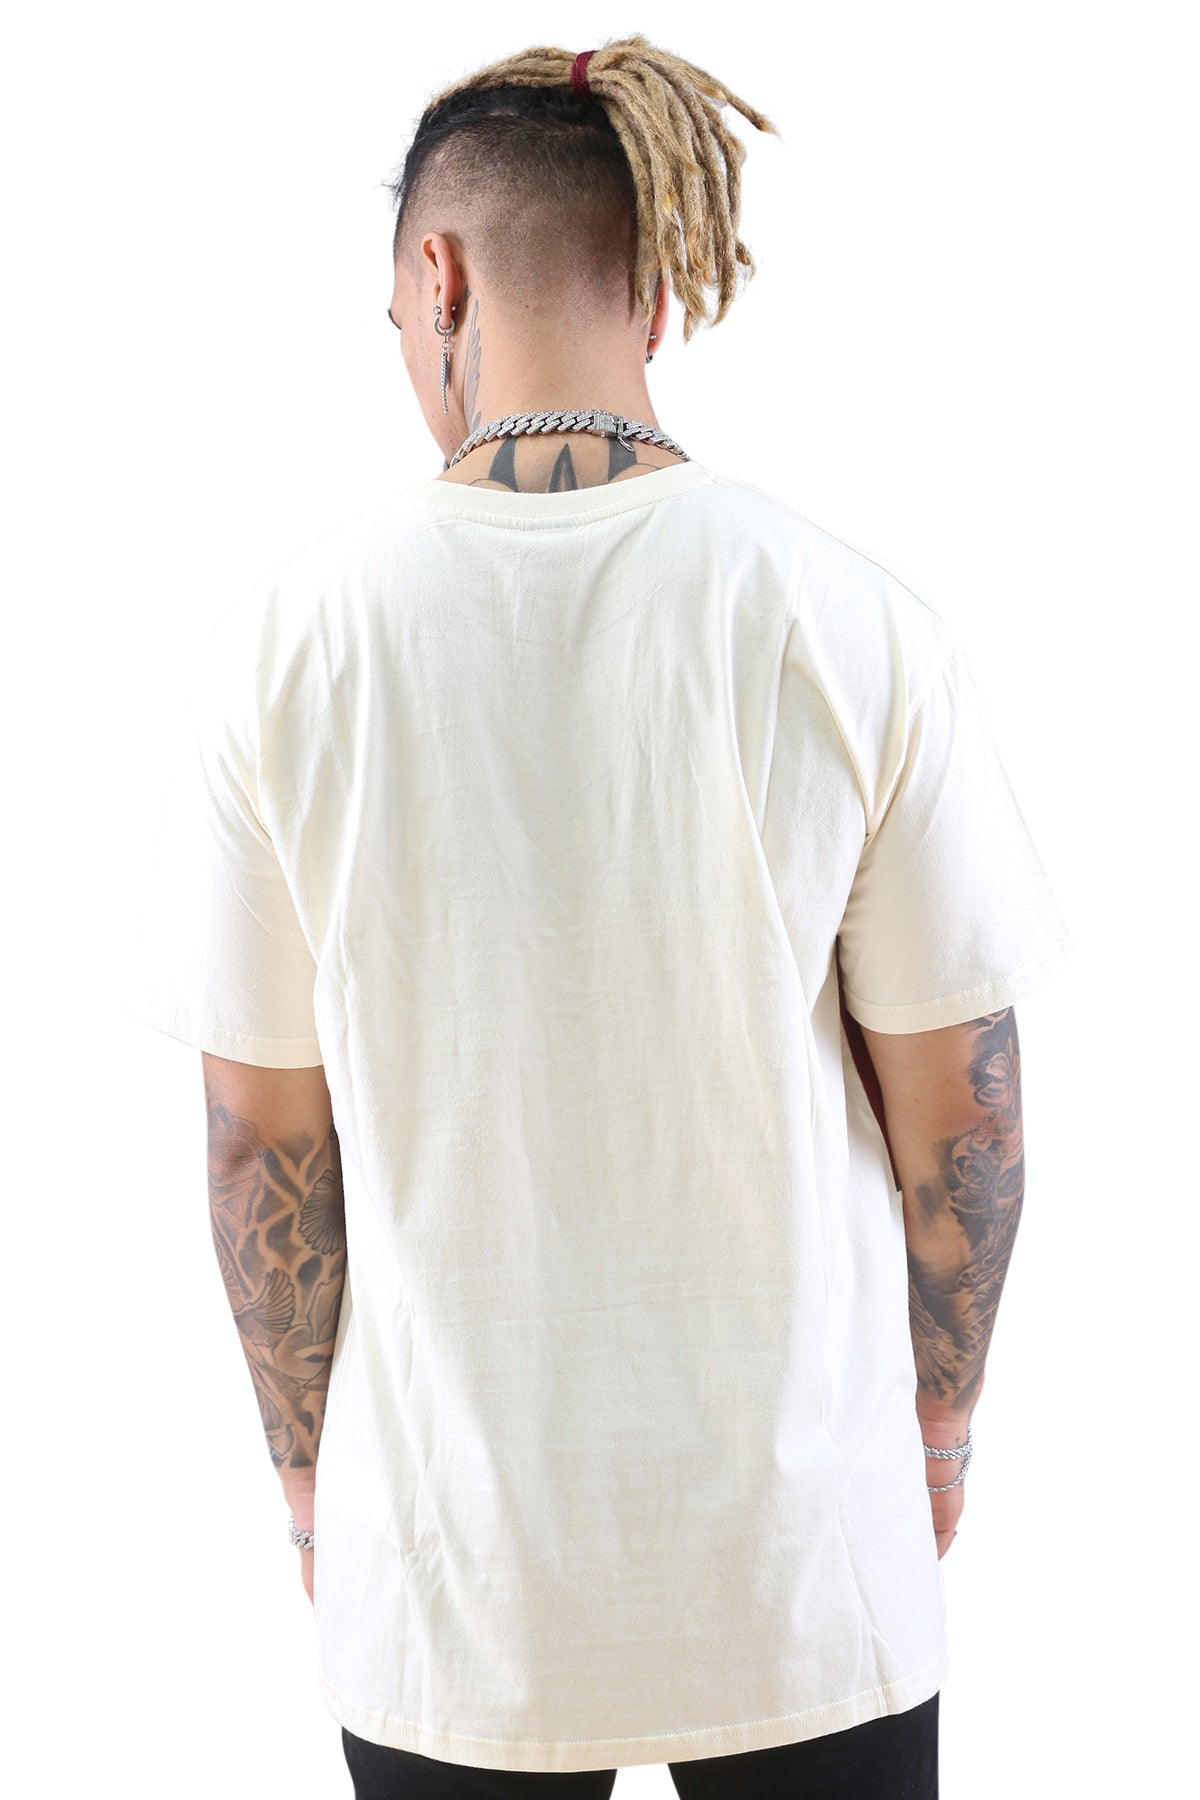 WNDRR Lynch 3 Panel Custom Fit Tee Off White Back